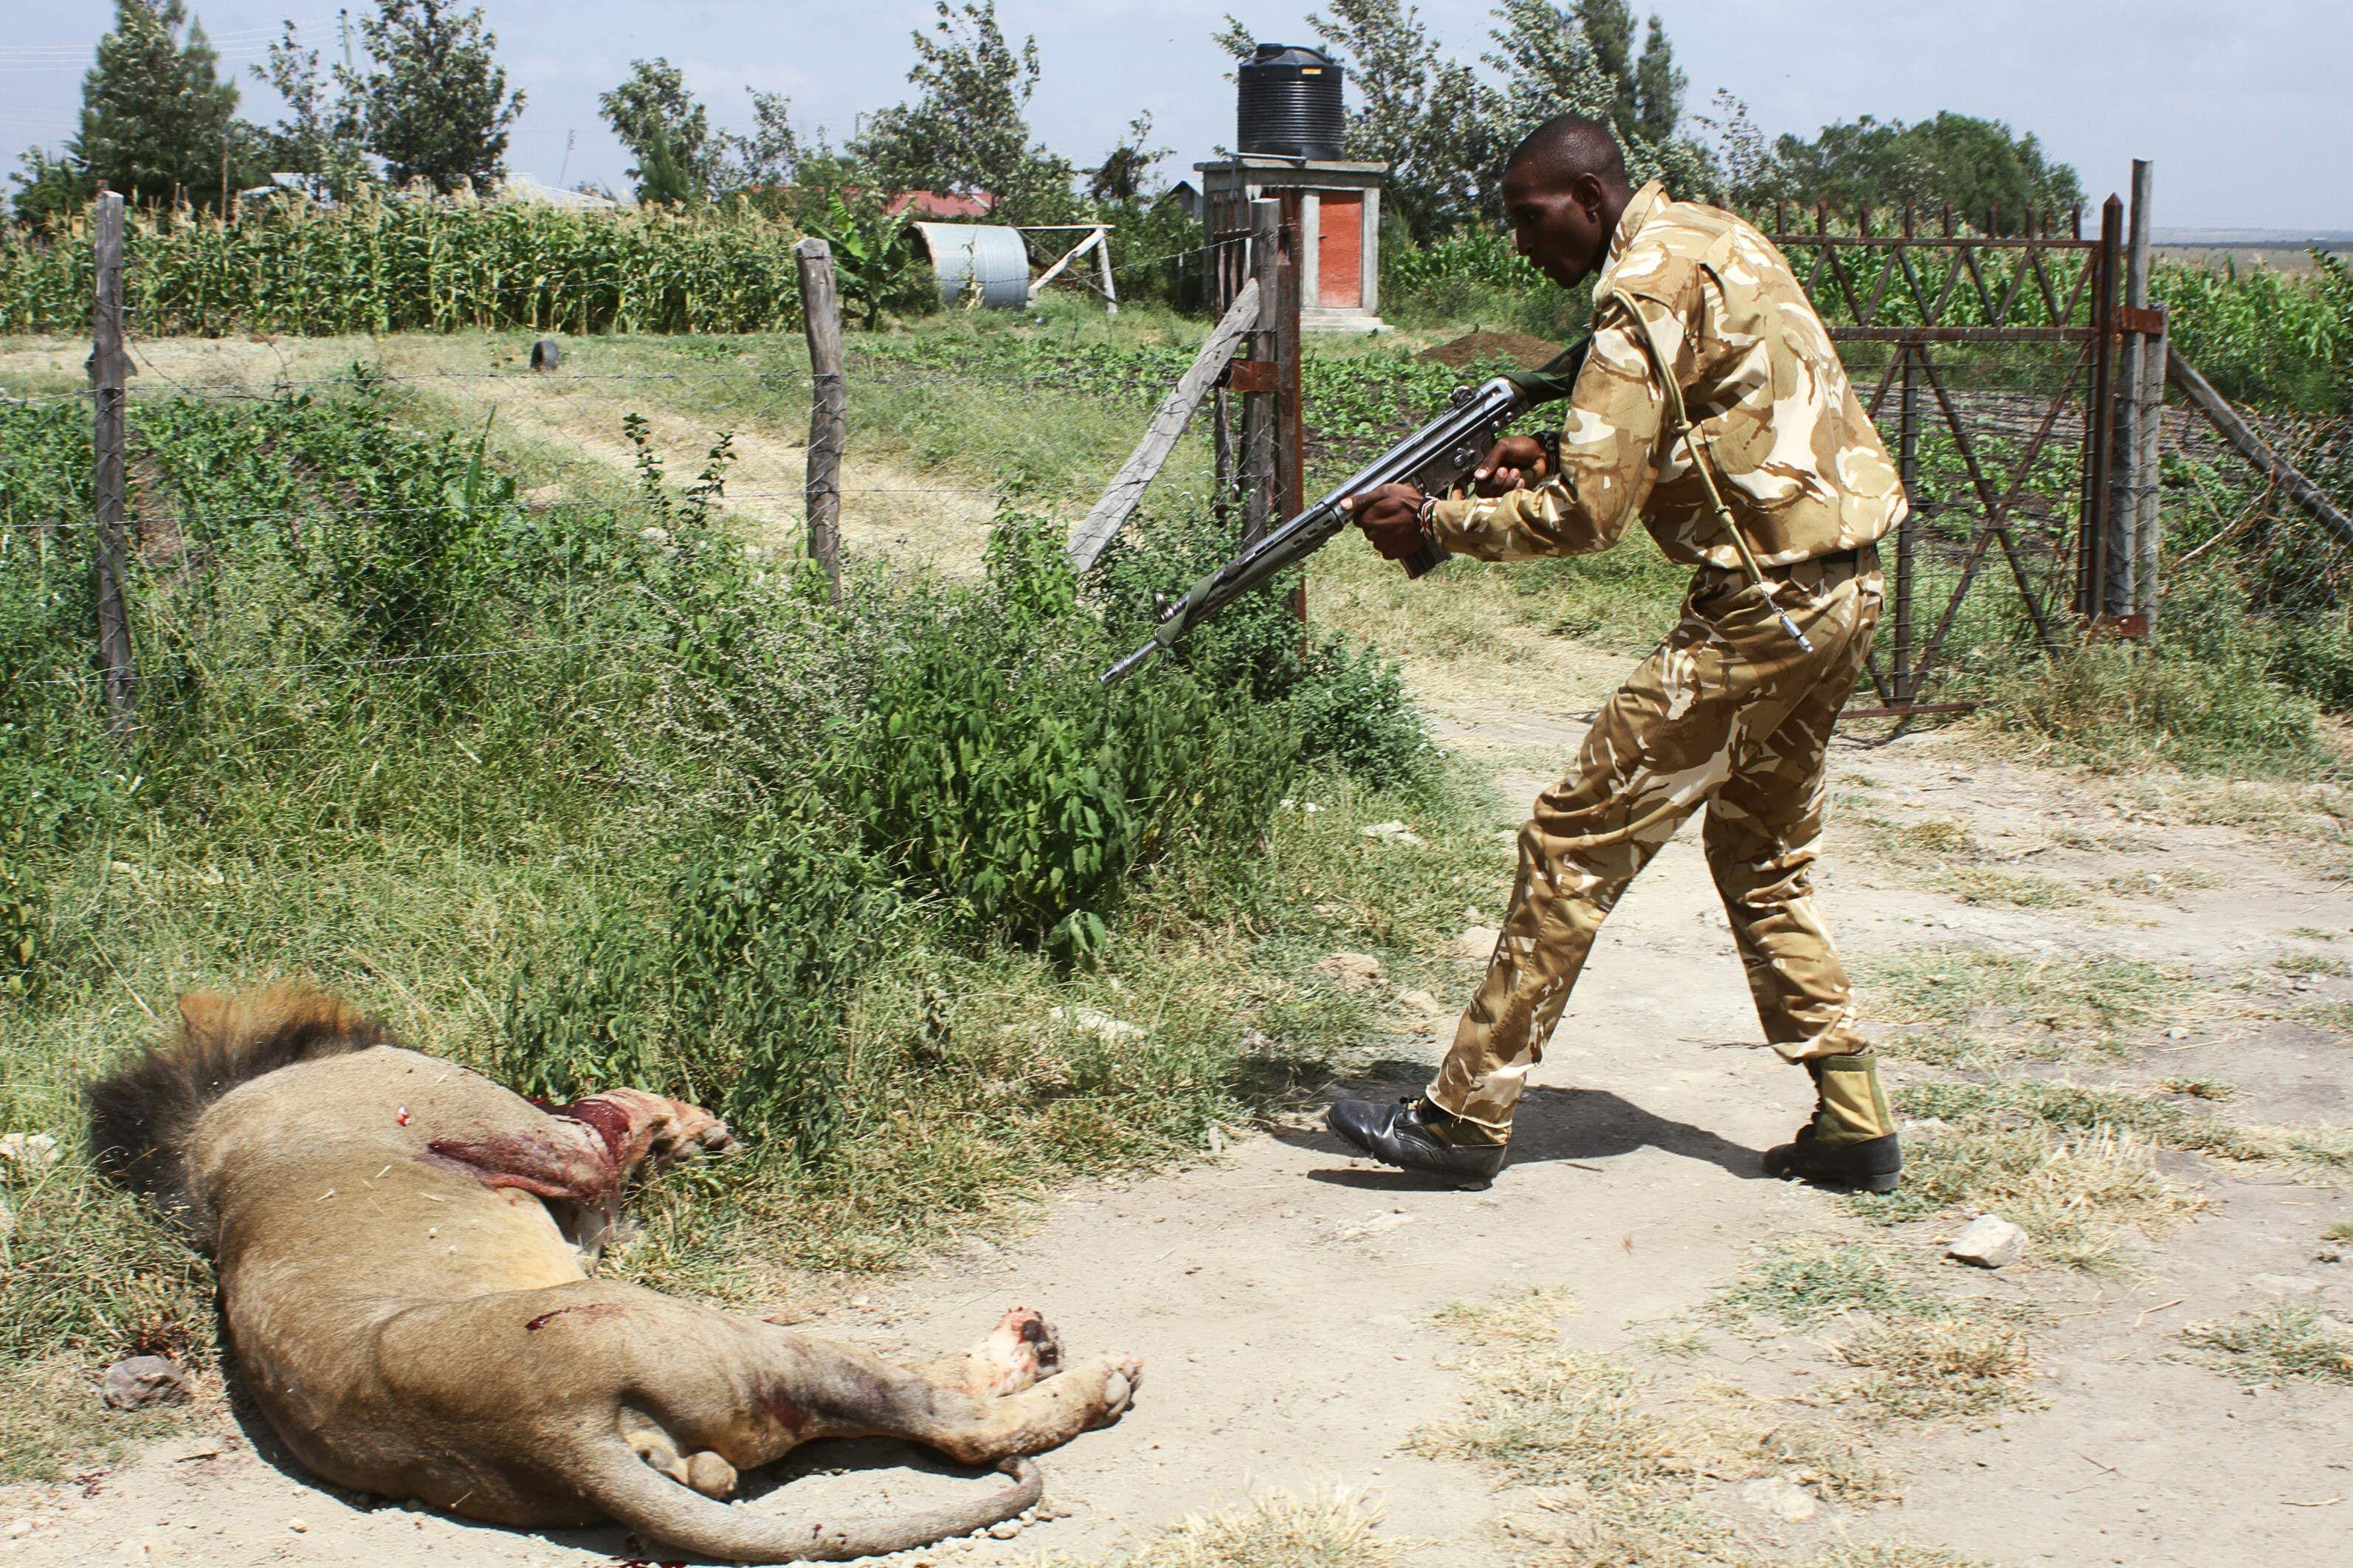 Rangers just killed one of Kenya's most famous lions because they didn't have tranquilizers